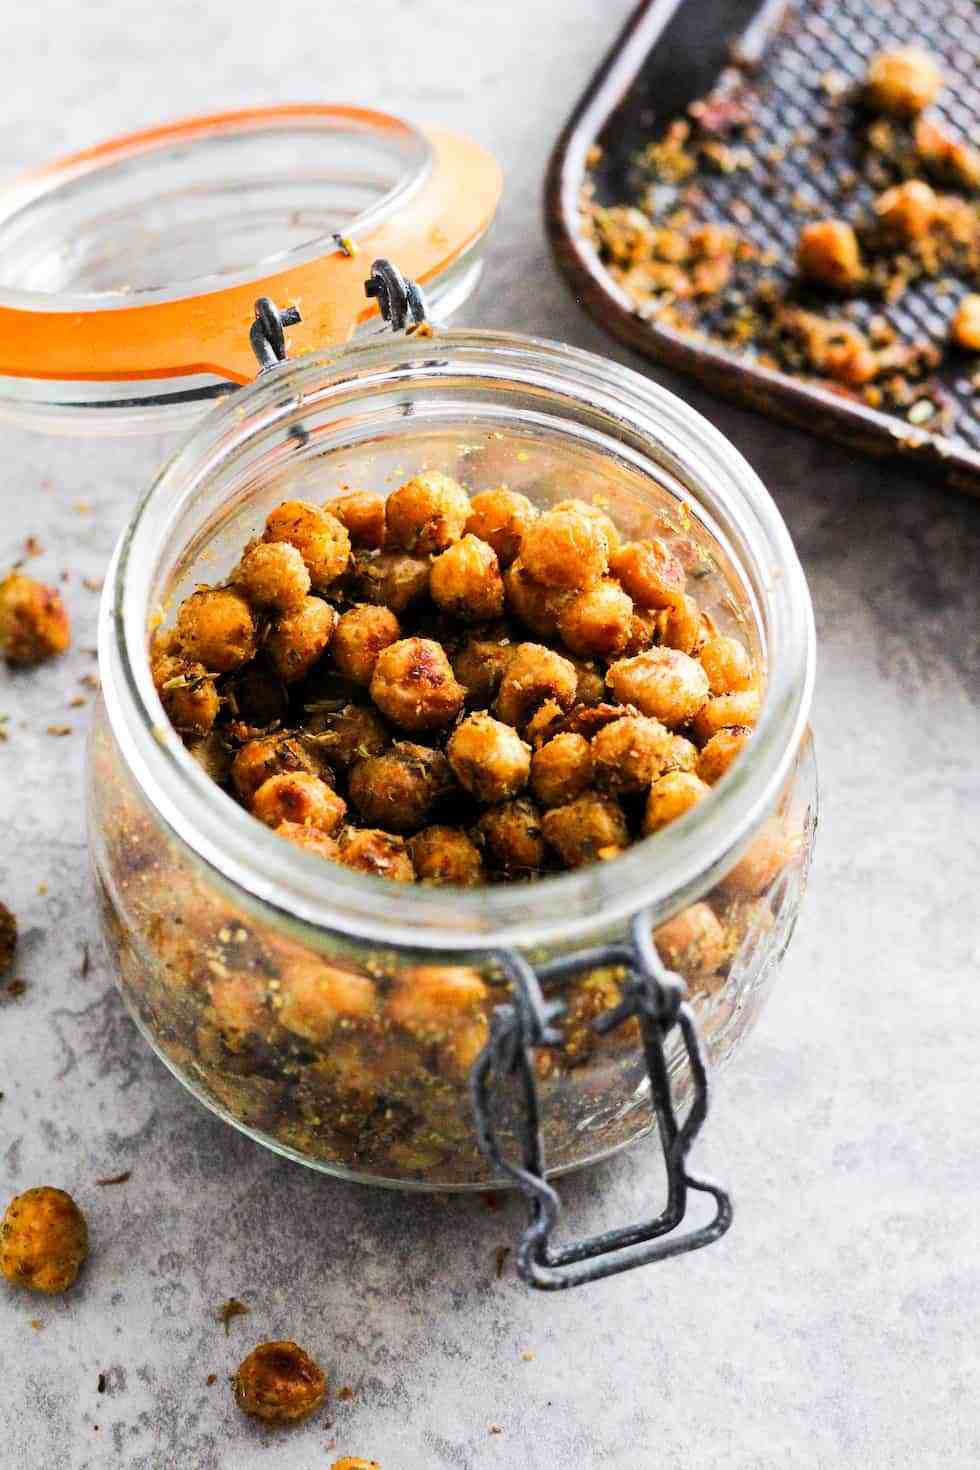 Jar of roasted chickpeas as example of pantry ingredients with baking sheet in the background.